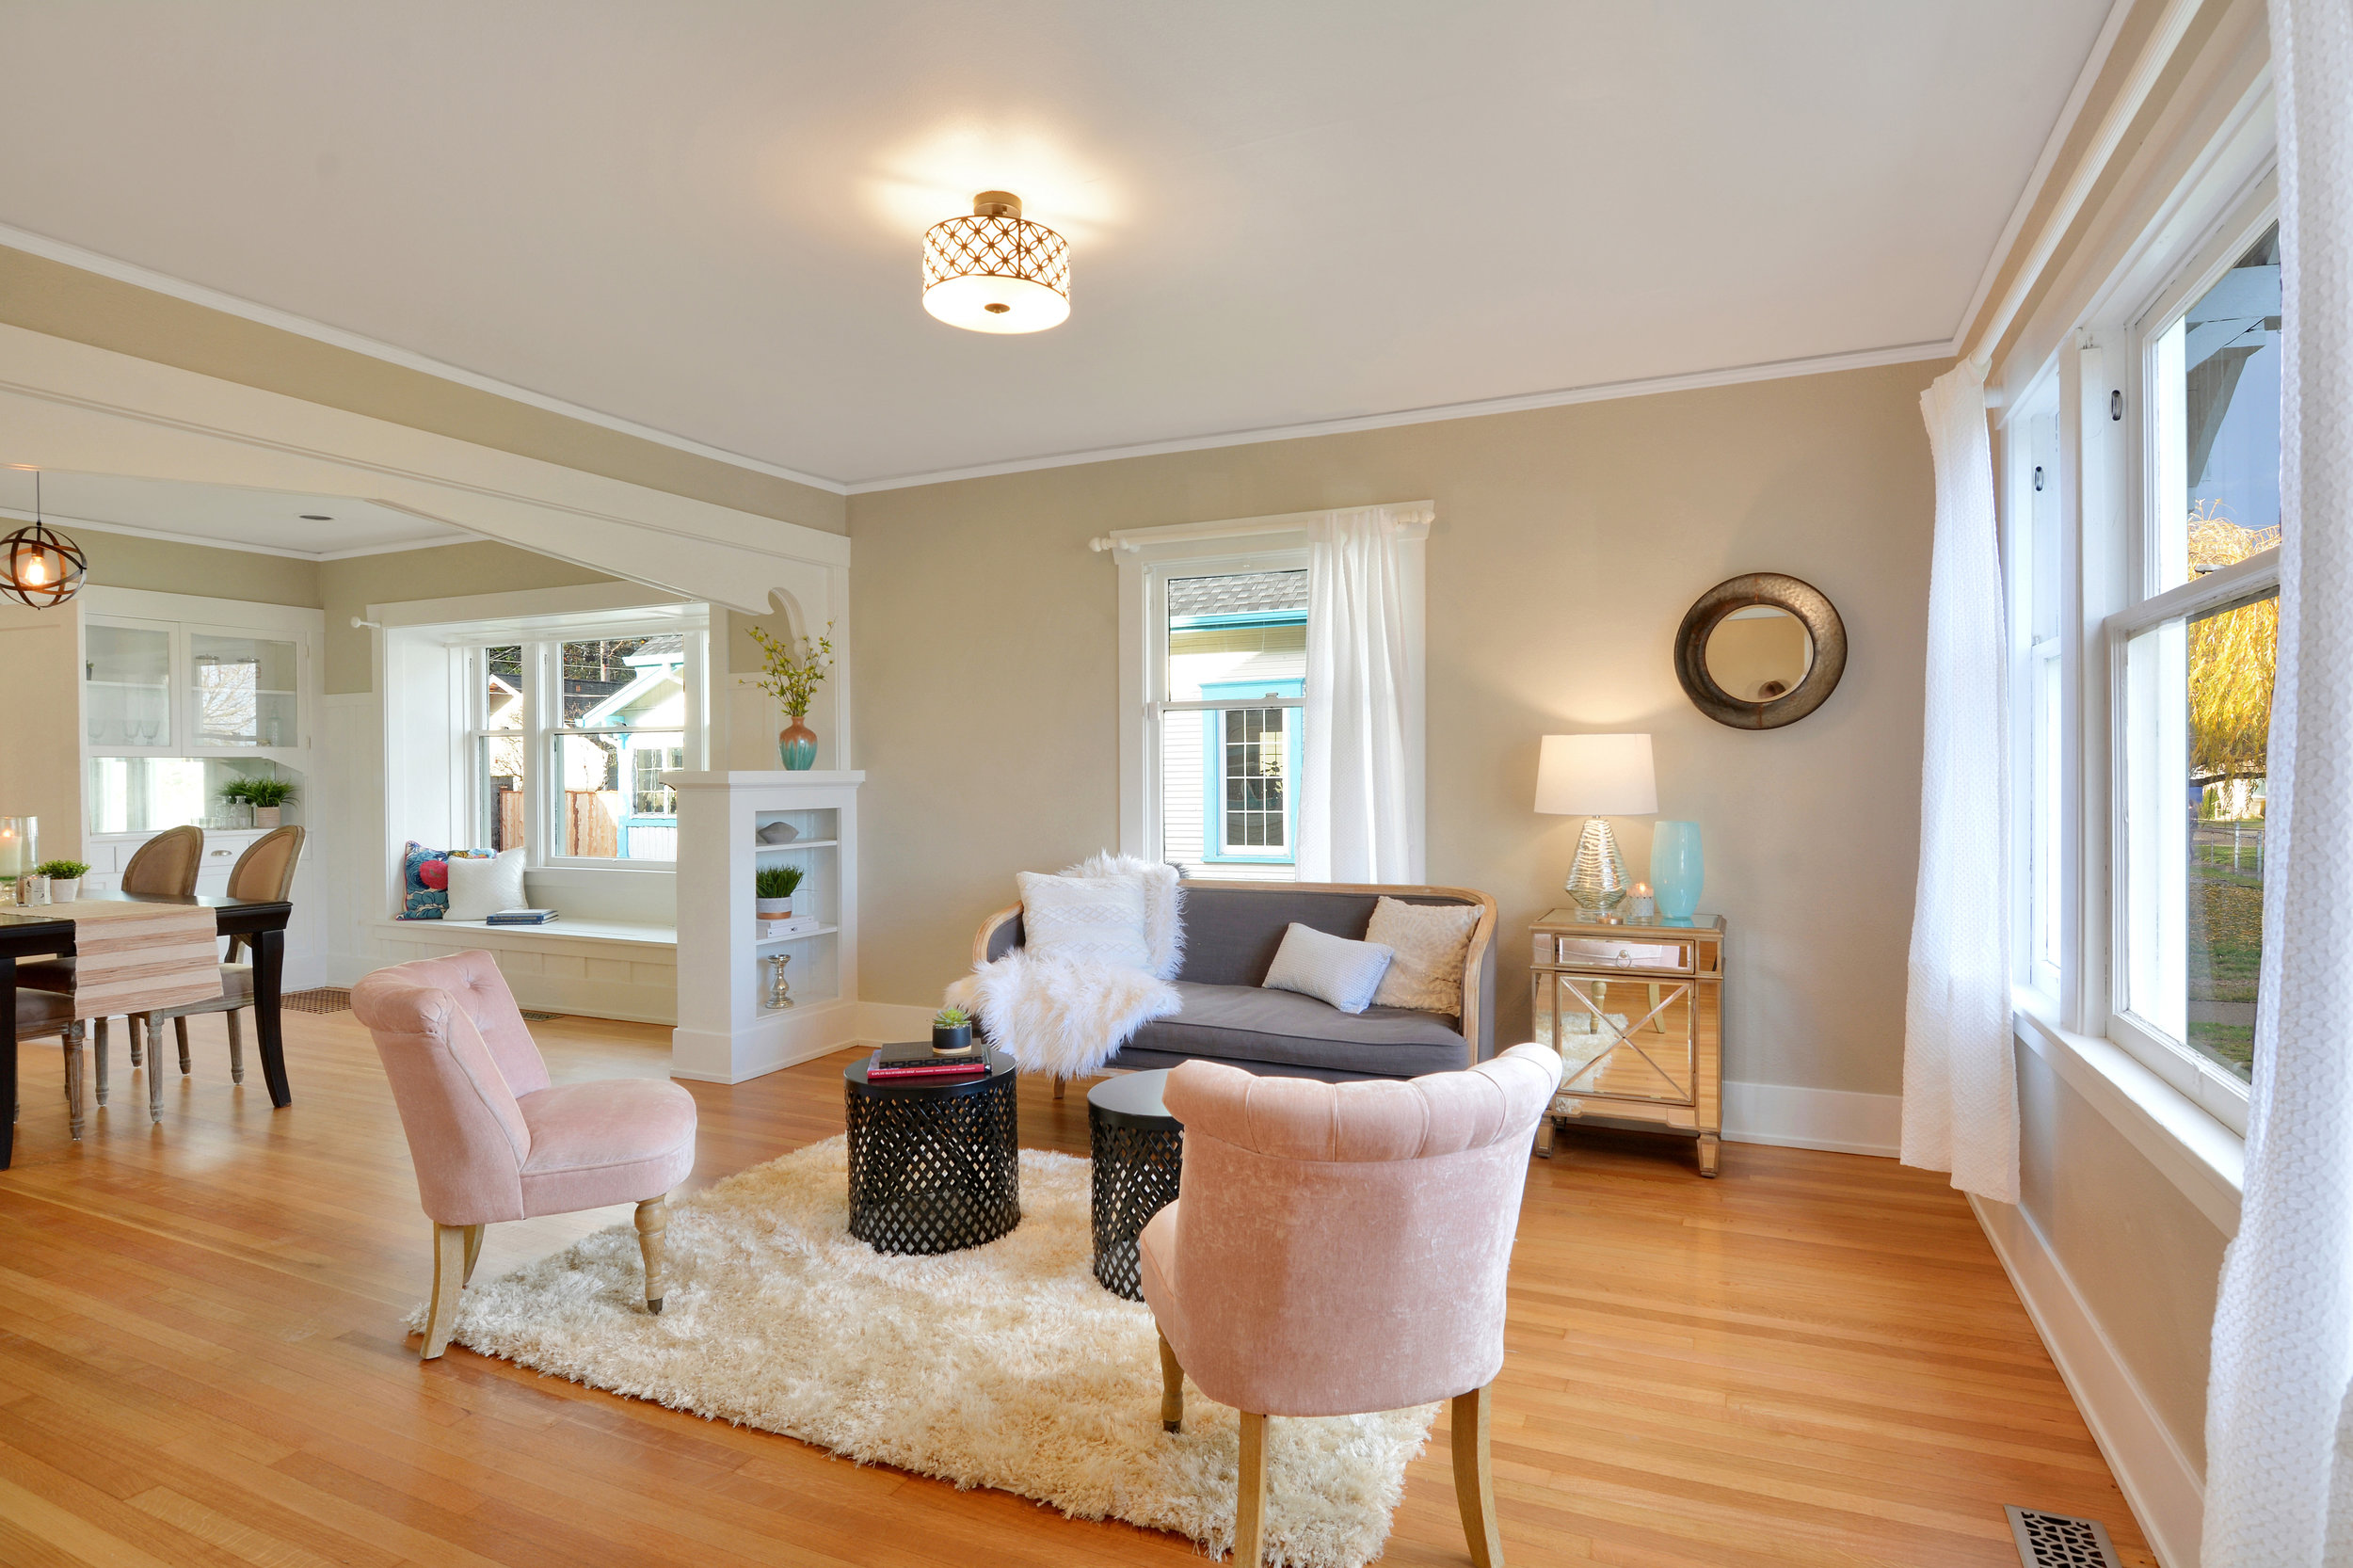 Refinished oak floors extend through the living room with its big windows, built-in shelves, and crown molding.